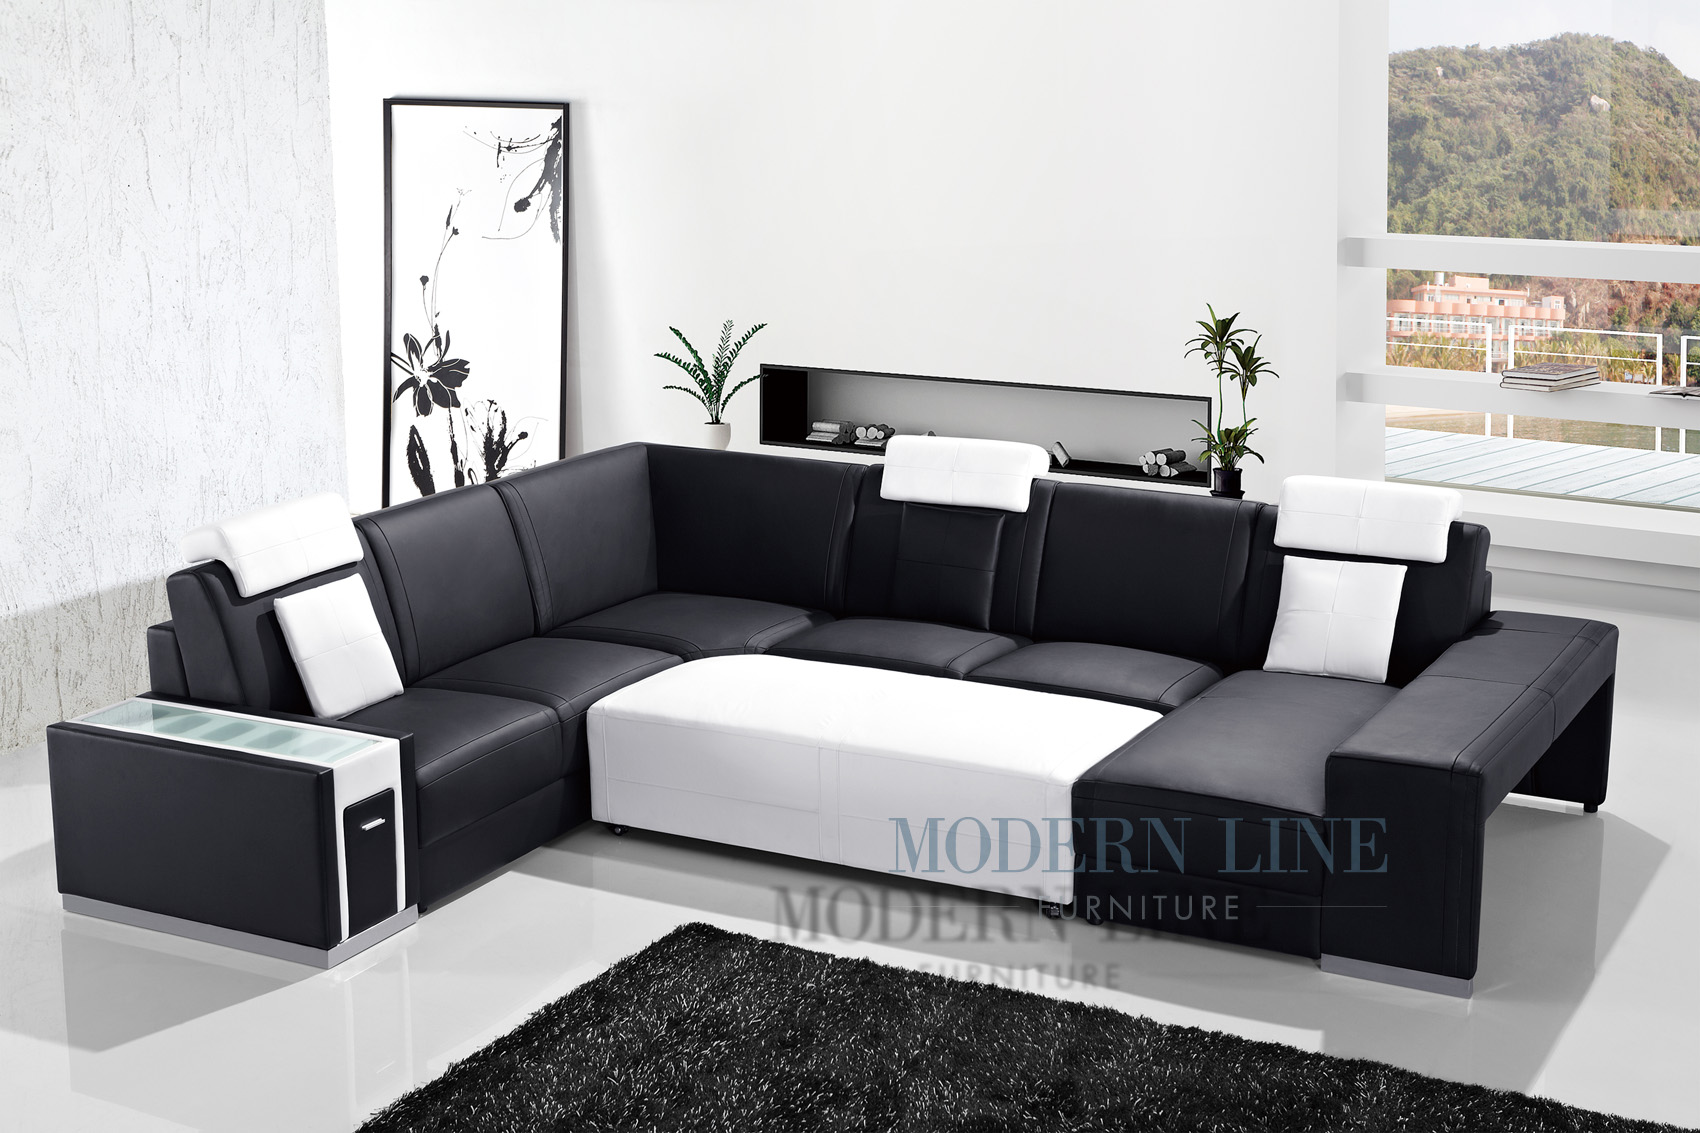 Marvellous black leather sectional for elegant living room design with black leather sectional sofa